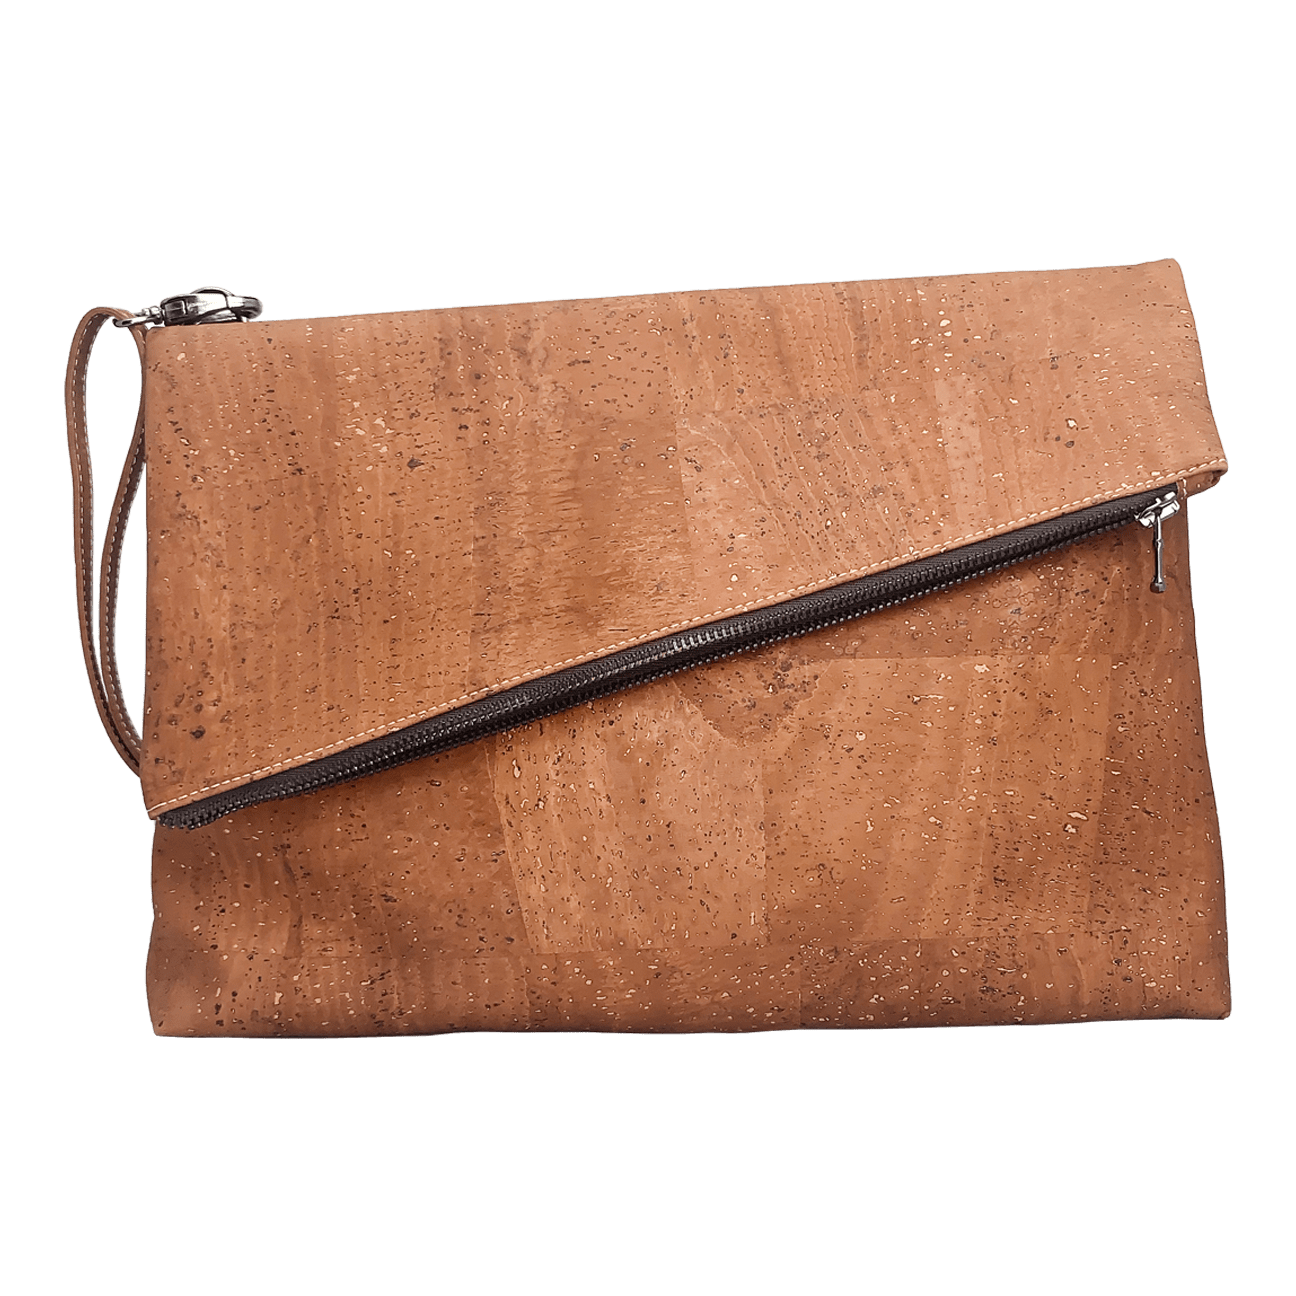 Large Diagonal Flap Crossbody Purse - Naturally Anti-Microbial Hypoallergenic Sustainable Eco-Friendly Cork